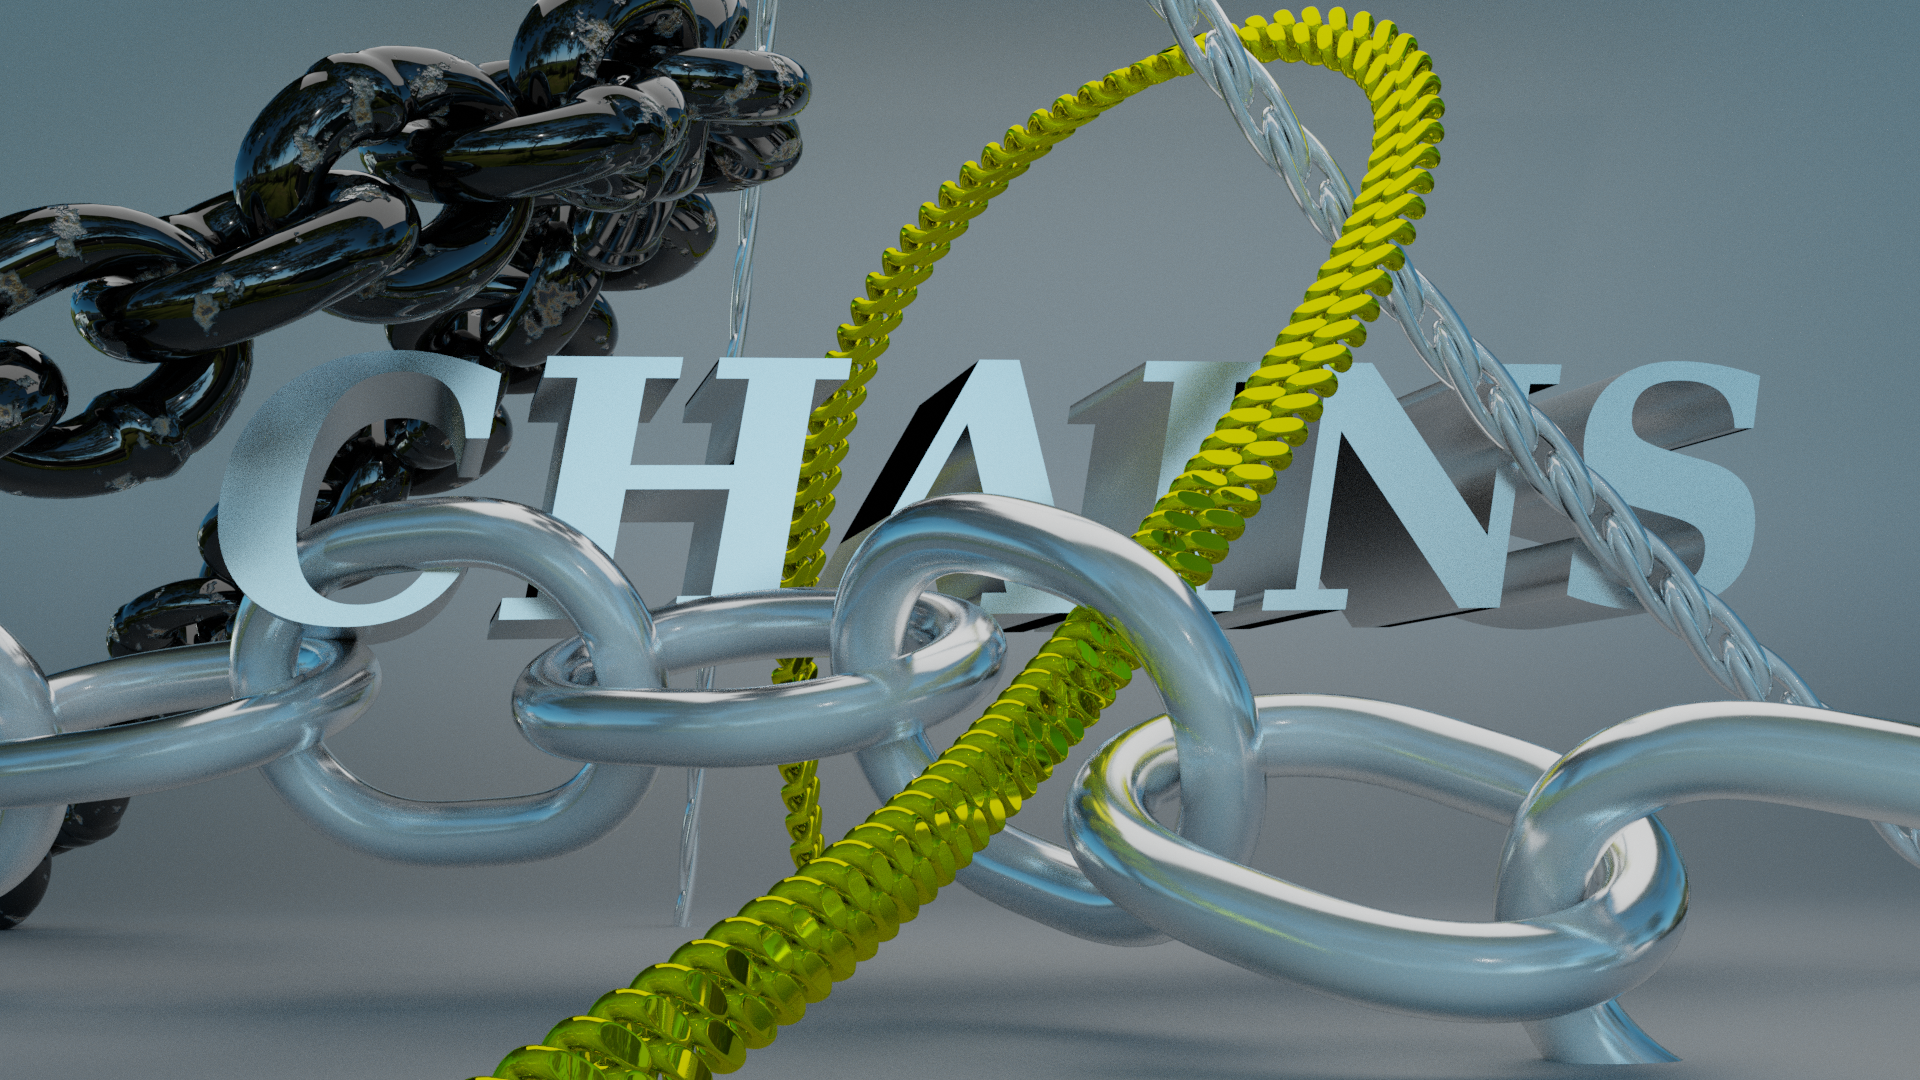 Chain Assets preview image 1